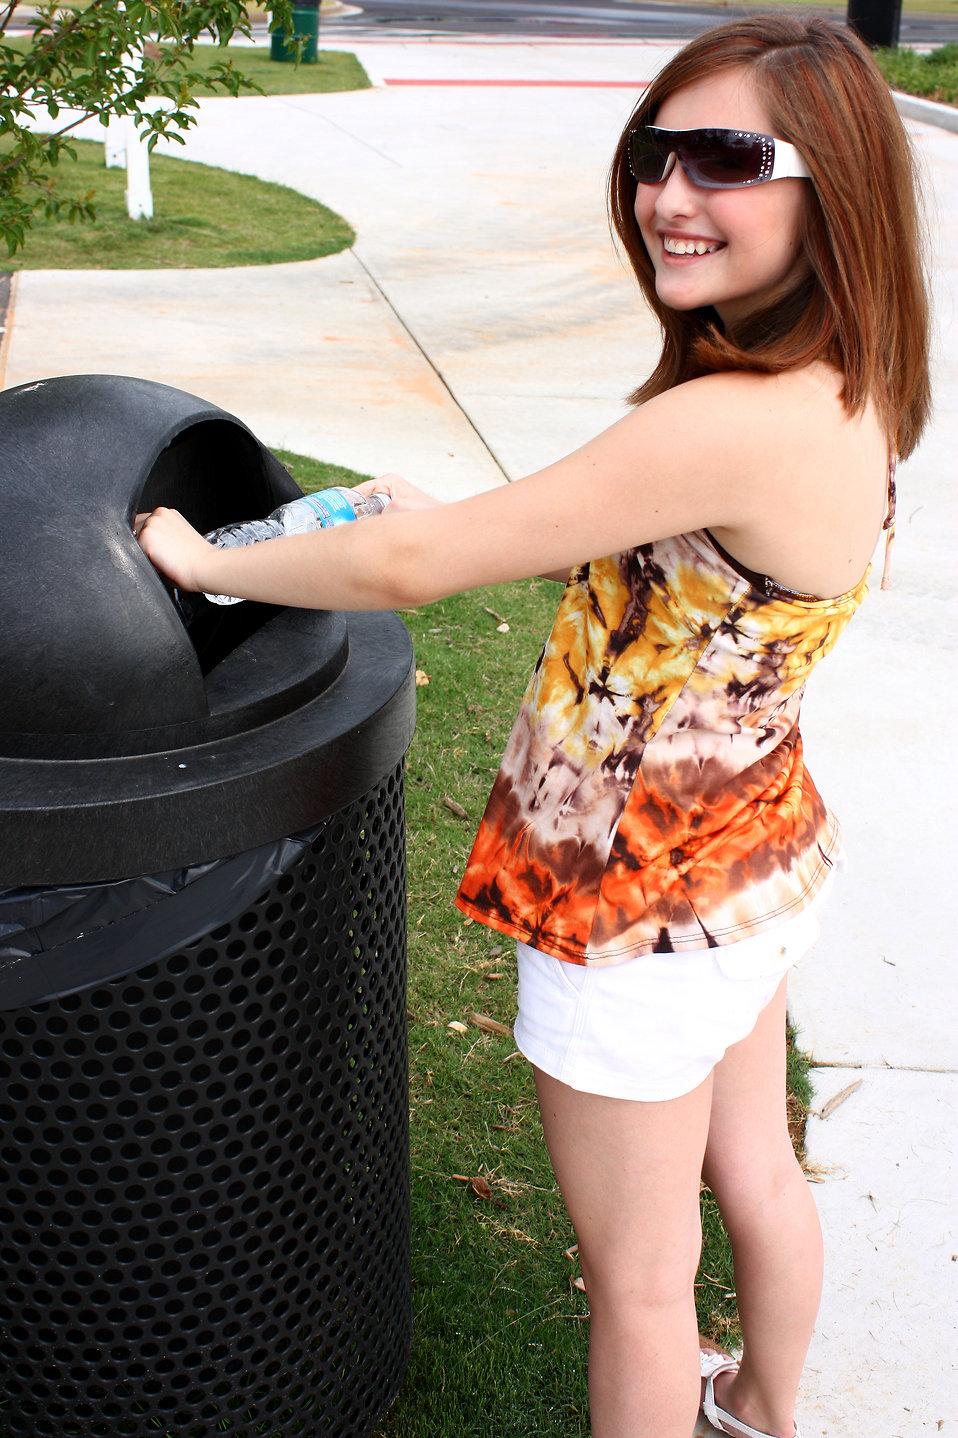 A young girl throwing away trash in a trash can : Free Stock Photo